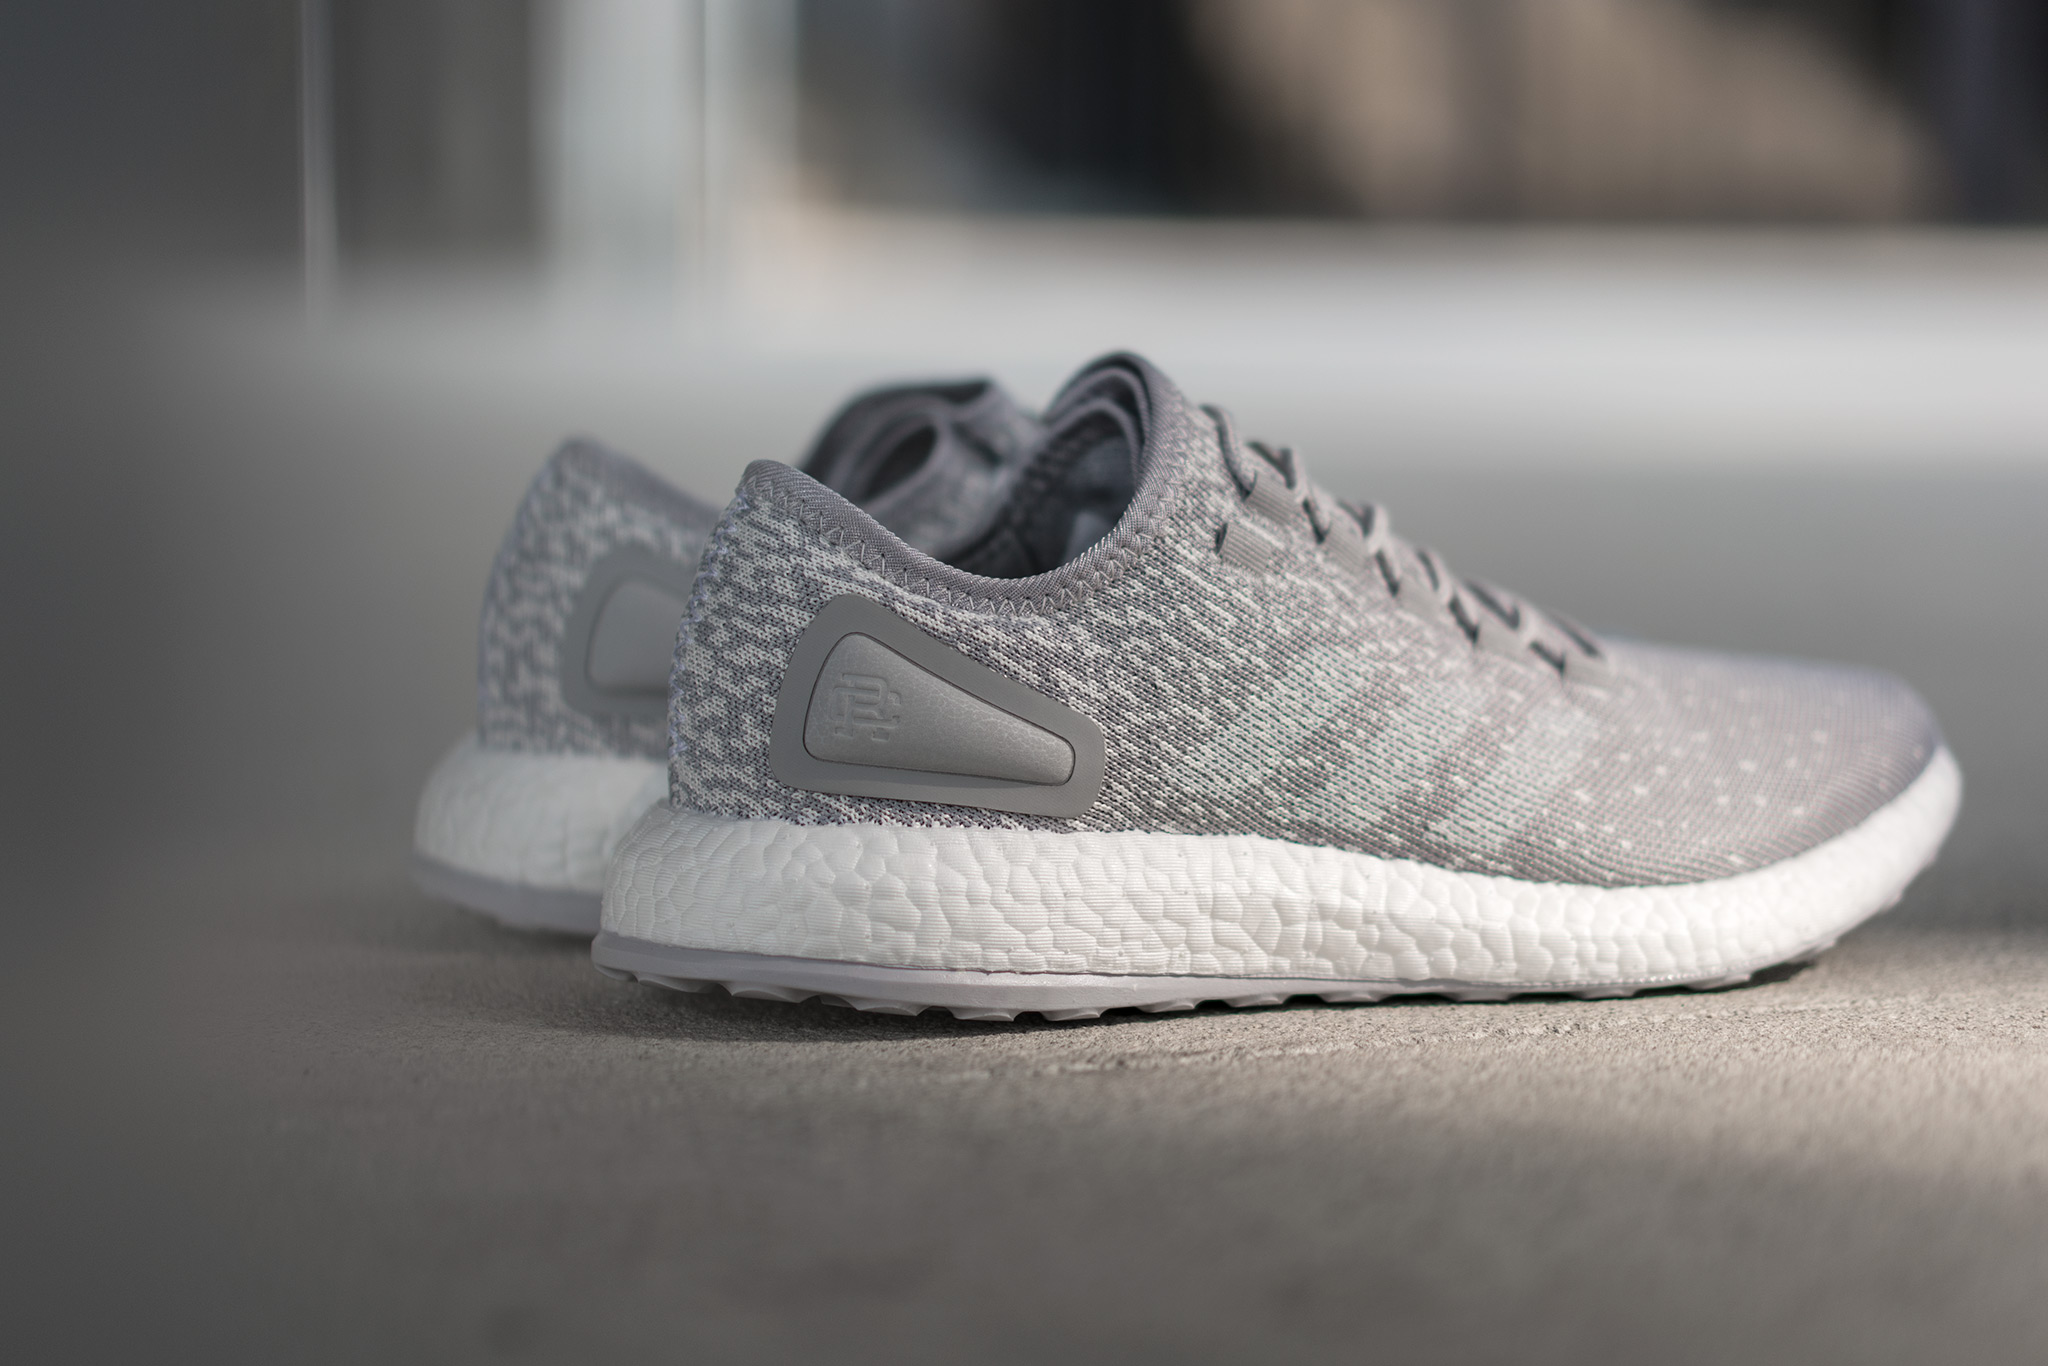 best service d7739 e78a9 Release Information The adidas x Reigning Champ pureboost will release  in-stores at HAVEN Vancouver  Toronto on August 24th at 11AM local time.